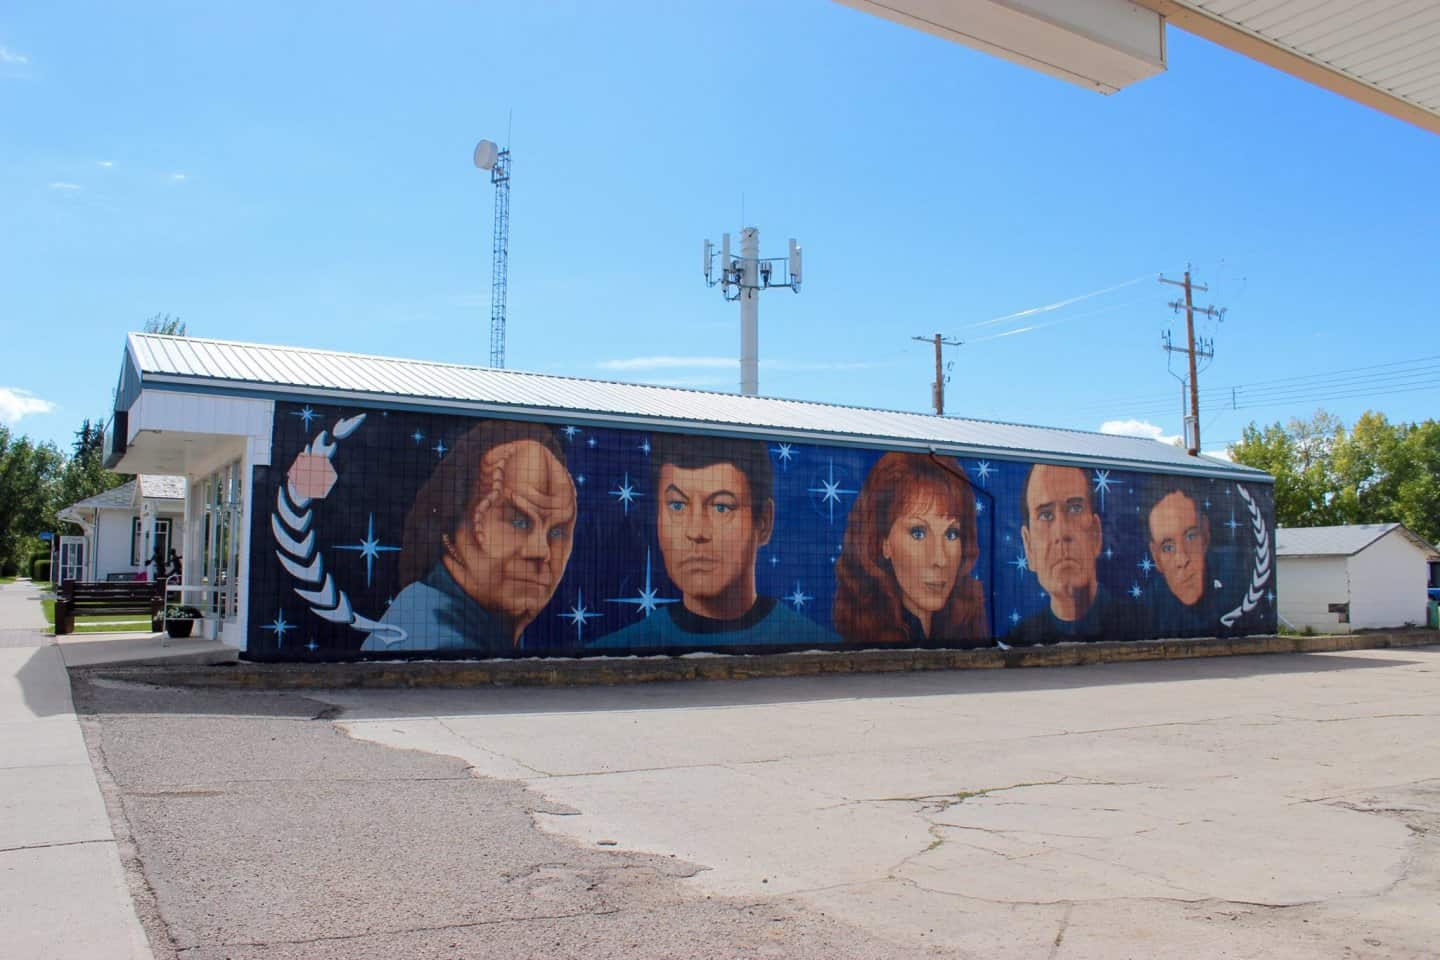 The side of a building with five staff members from the medical staff from various Star Trek series. Their heads are painted on side by side with a blue starry sky in the background.